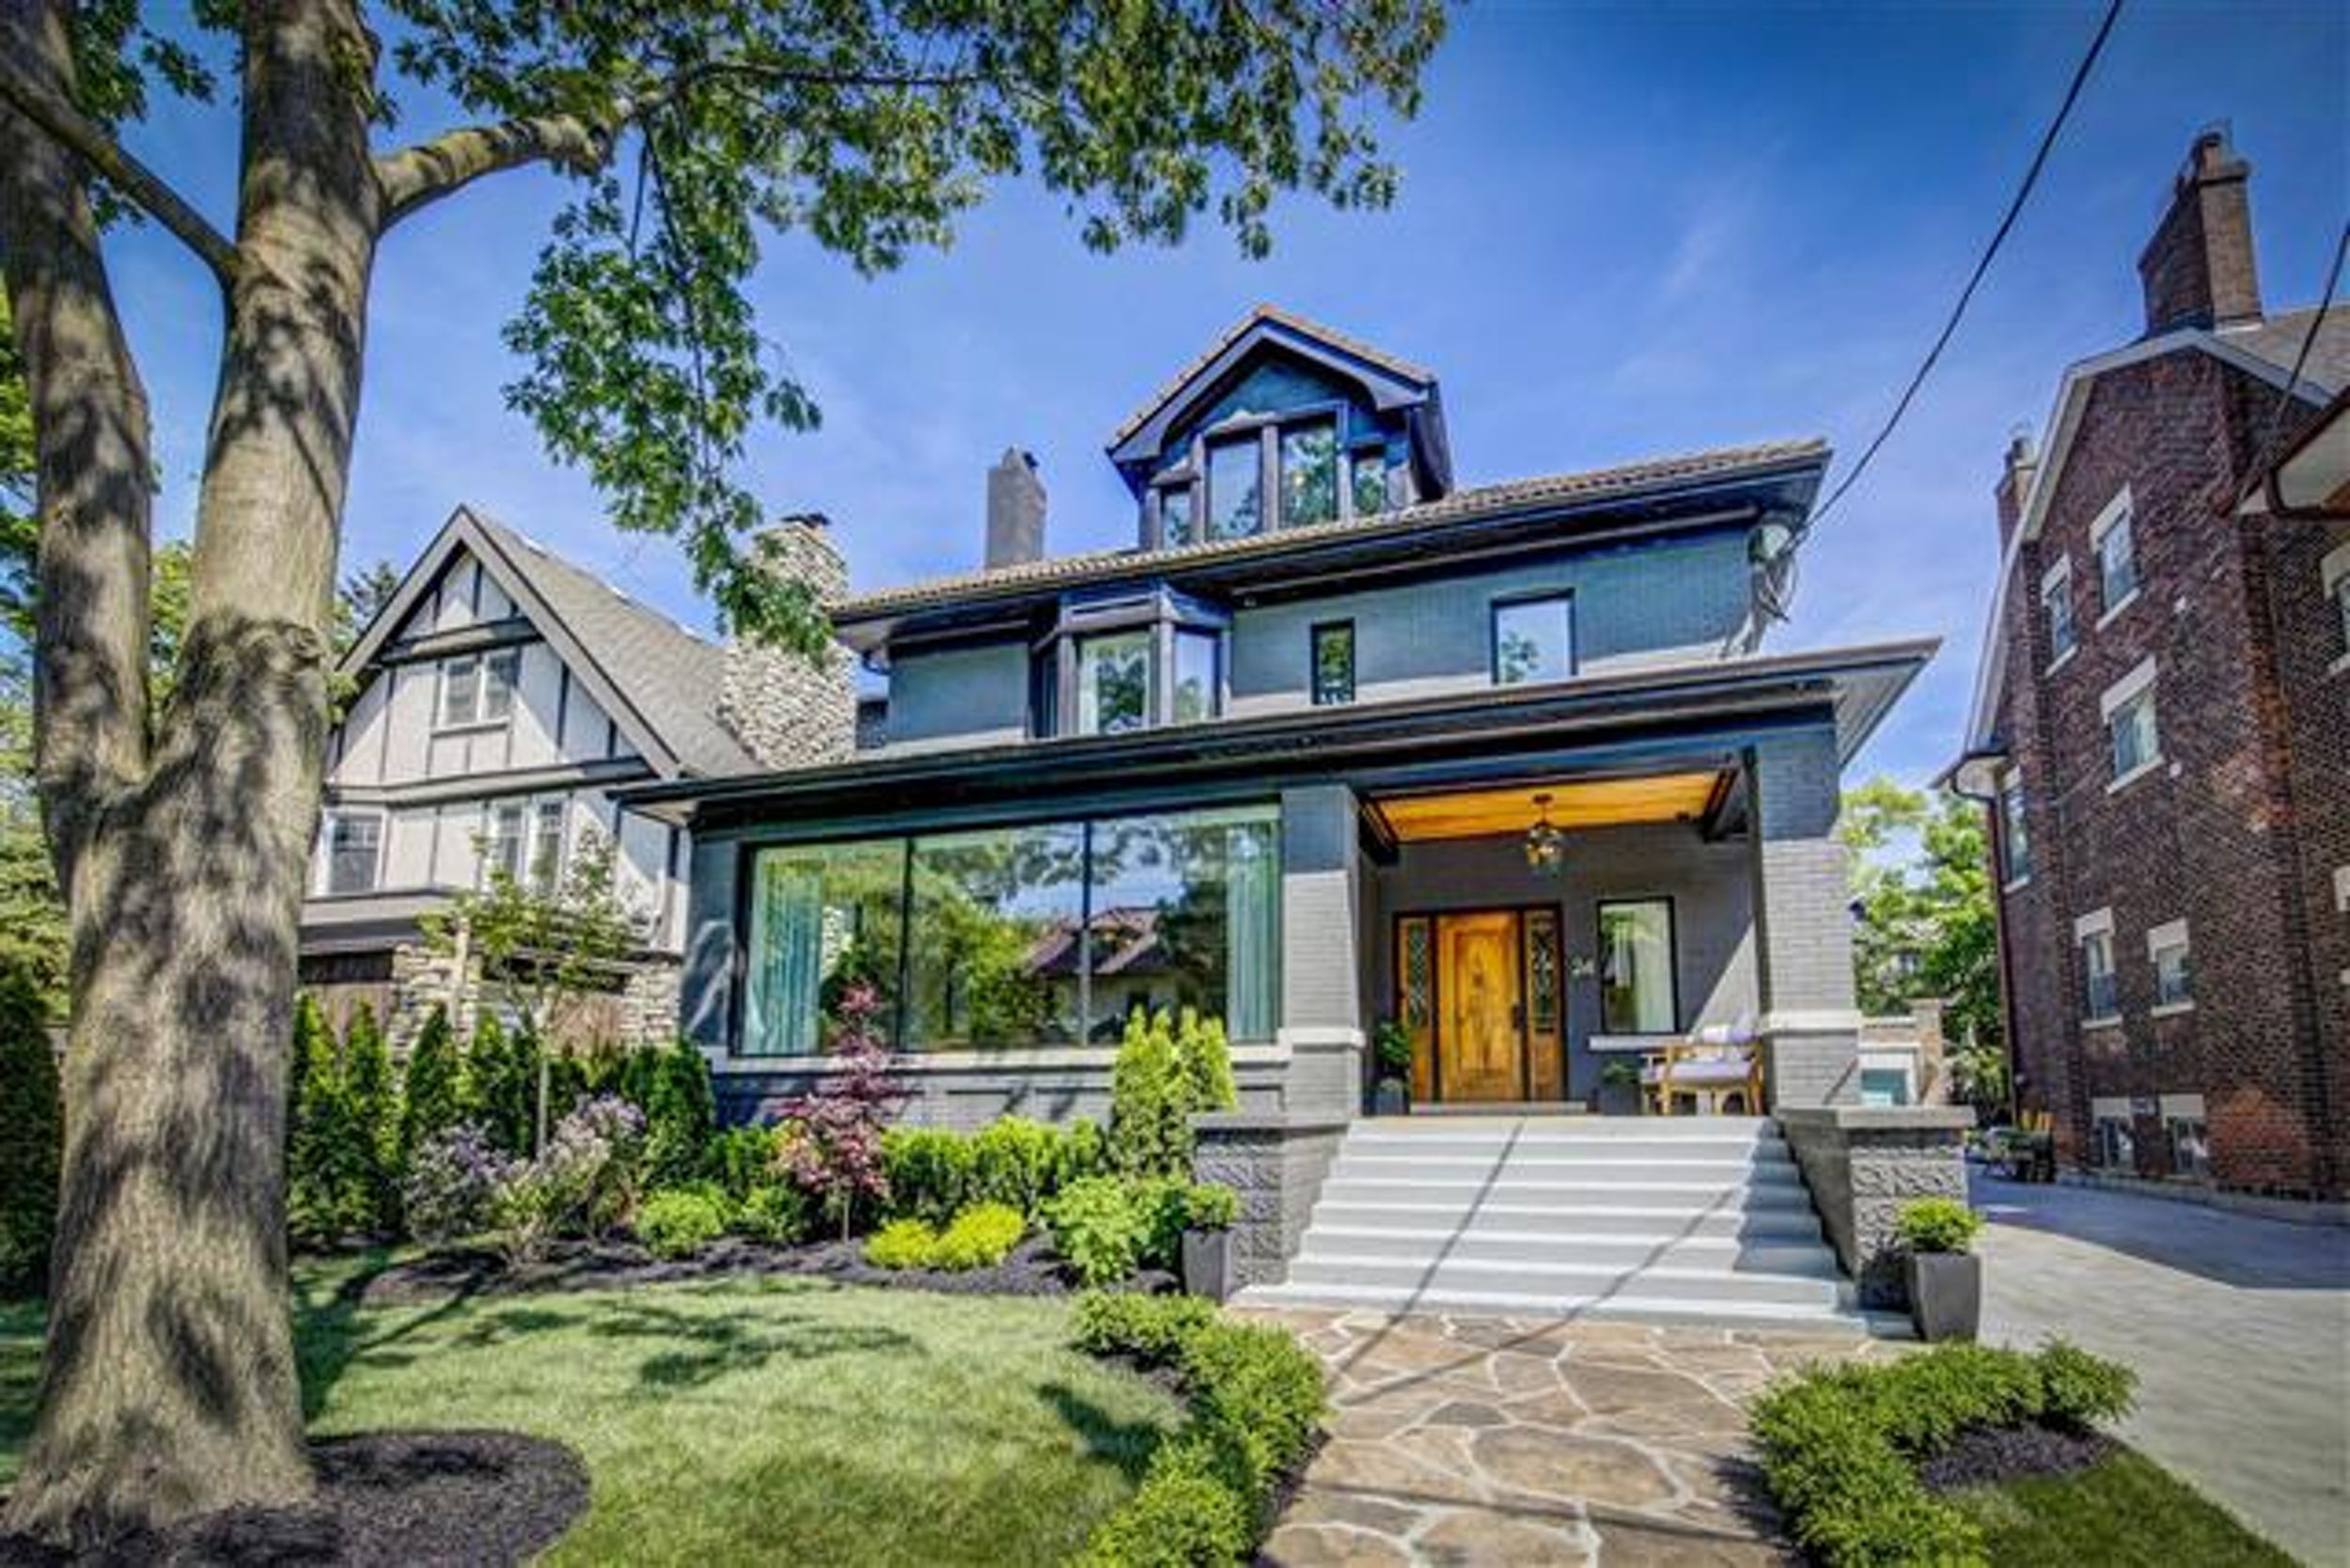 Home Of The Week A House In Shade Oaks Globe And Mail Residential Electrician Toronto Repair